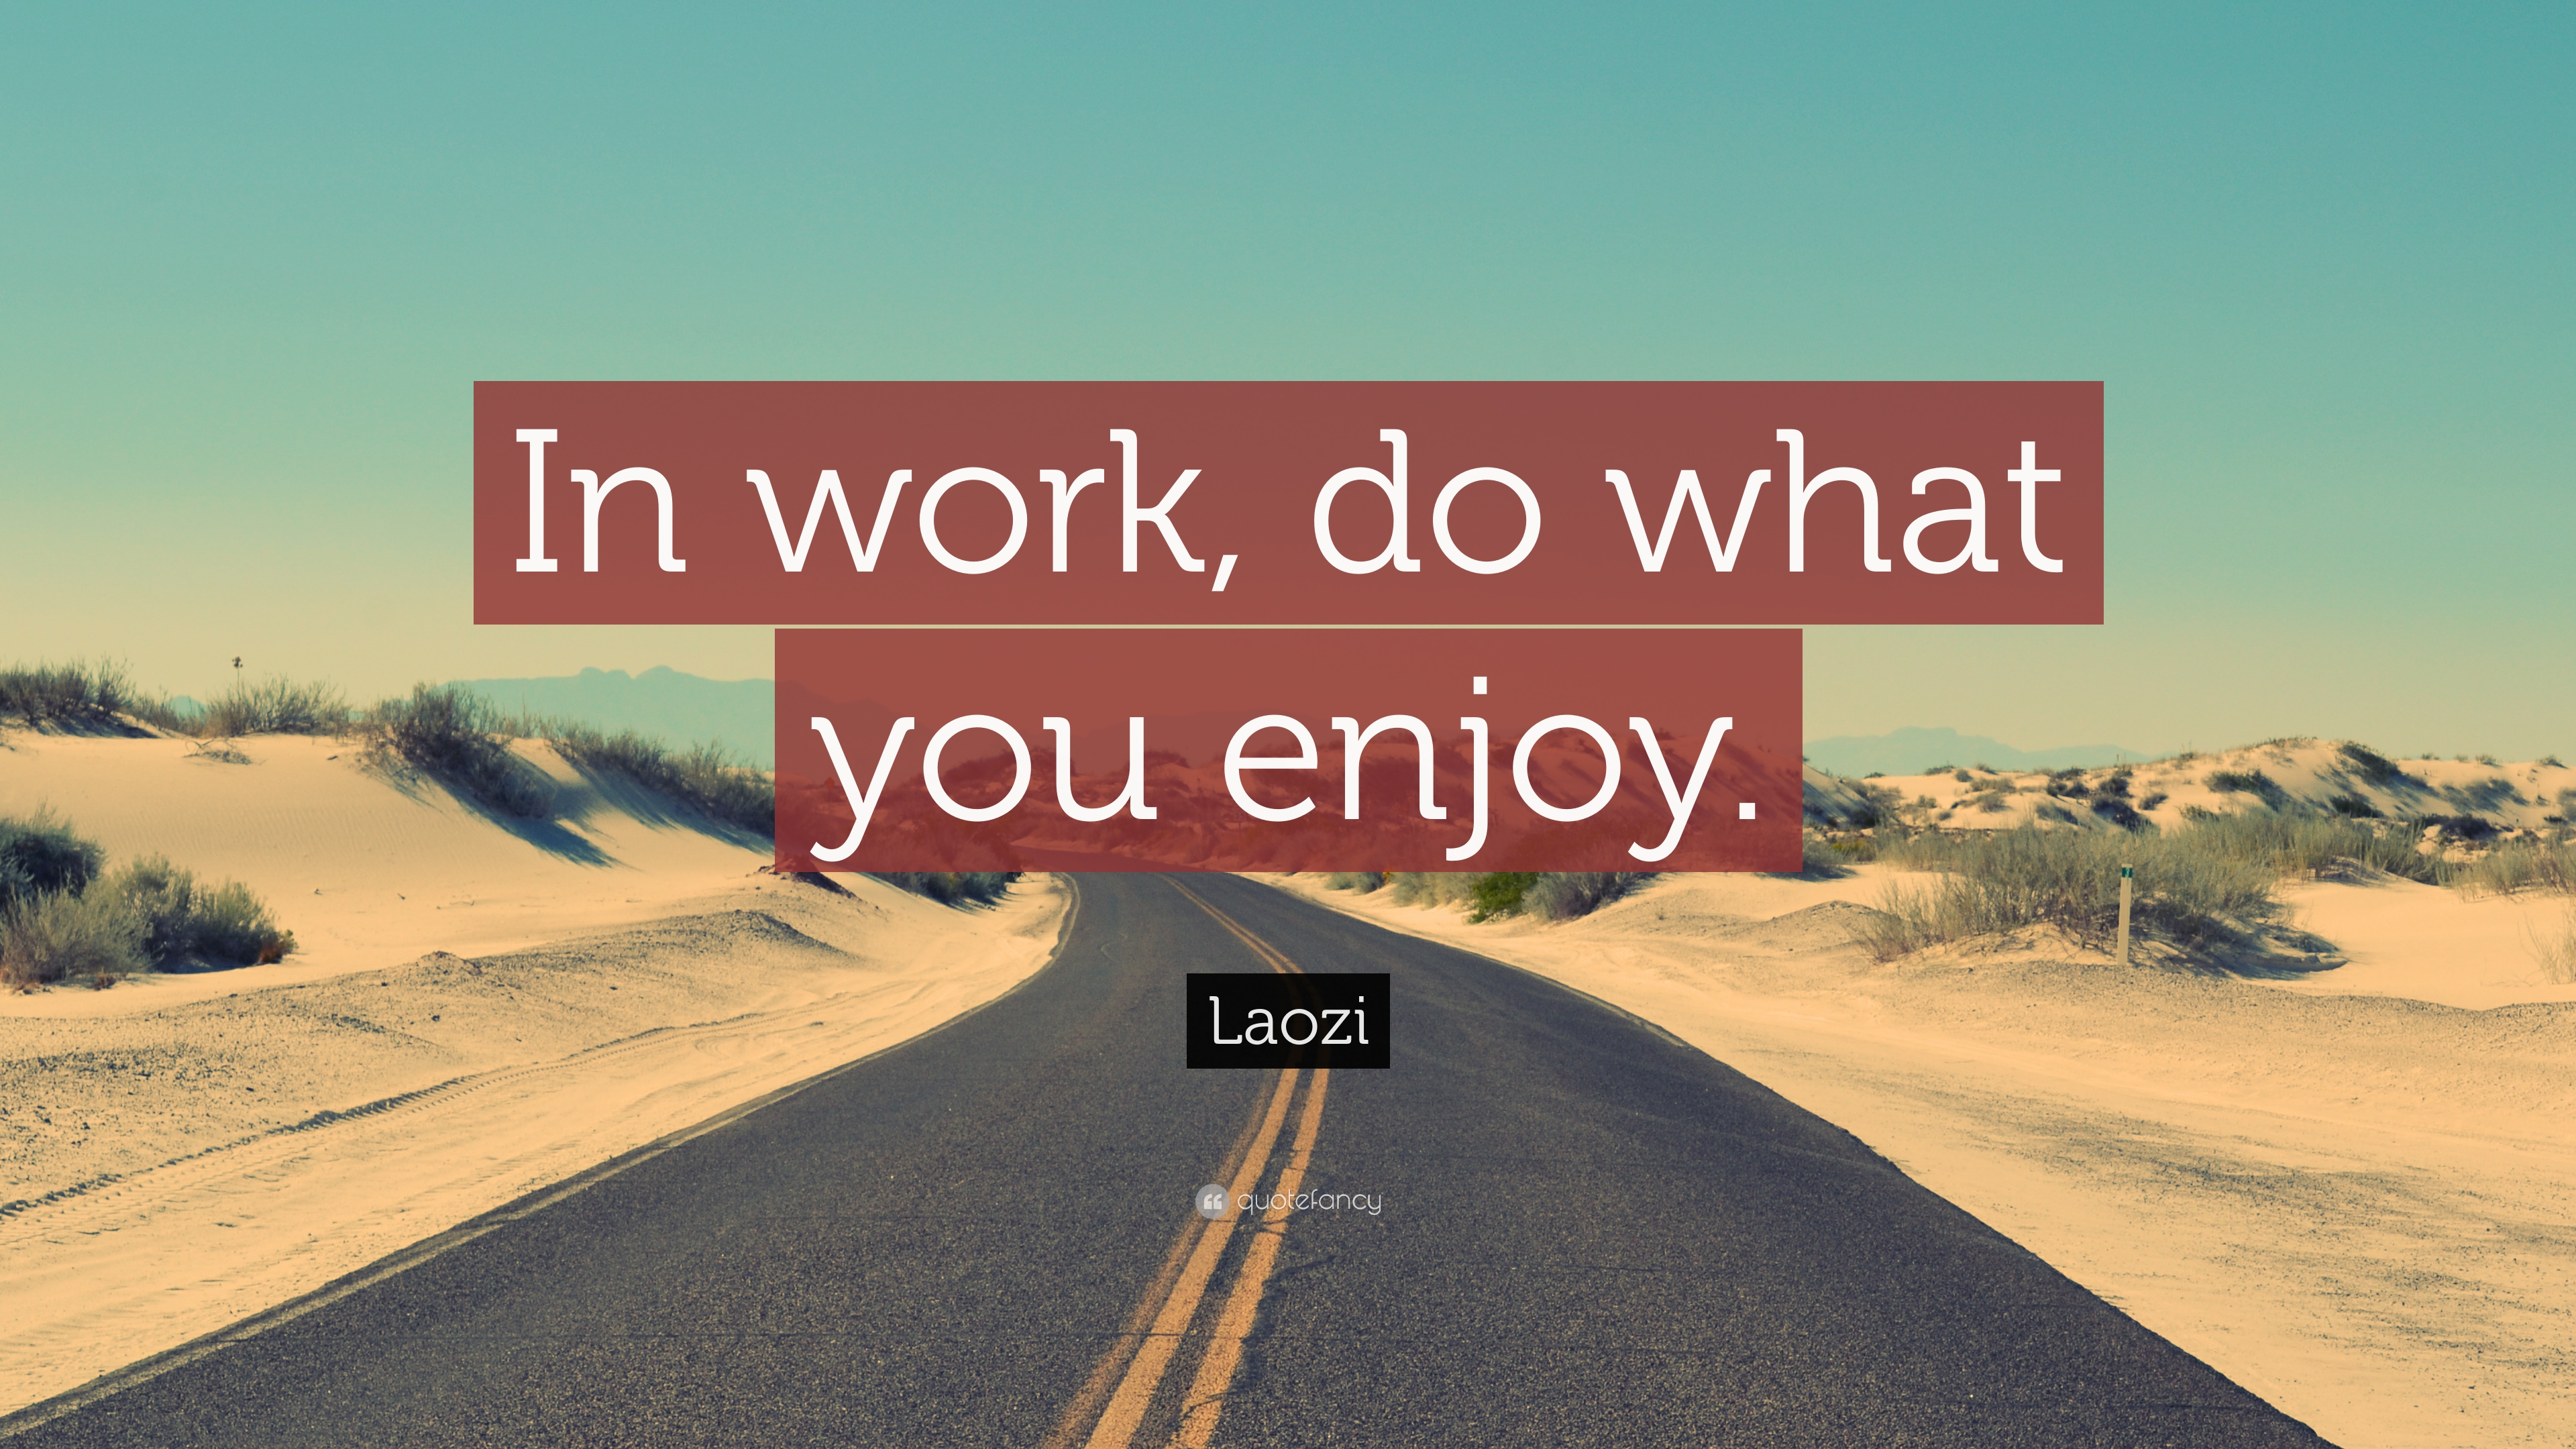 laozi quote in work do what you enjoy 5 quotefancy laozi quote in work do what you enjoy